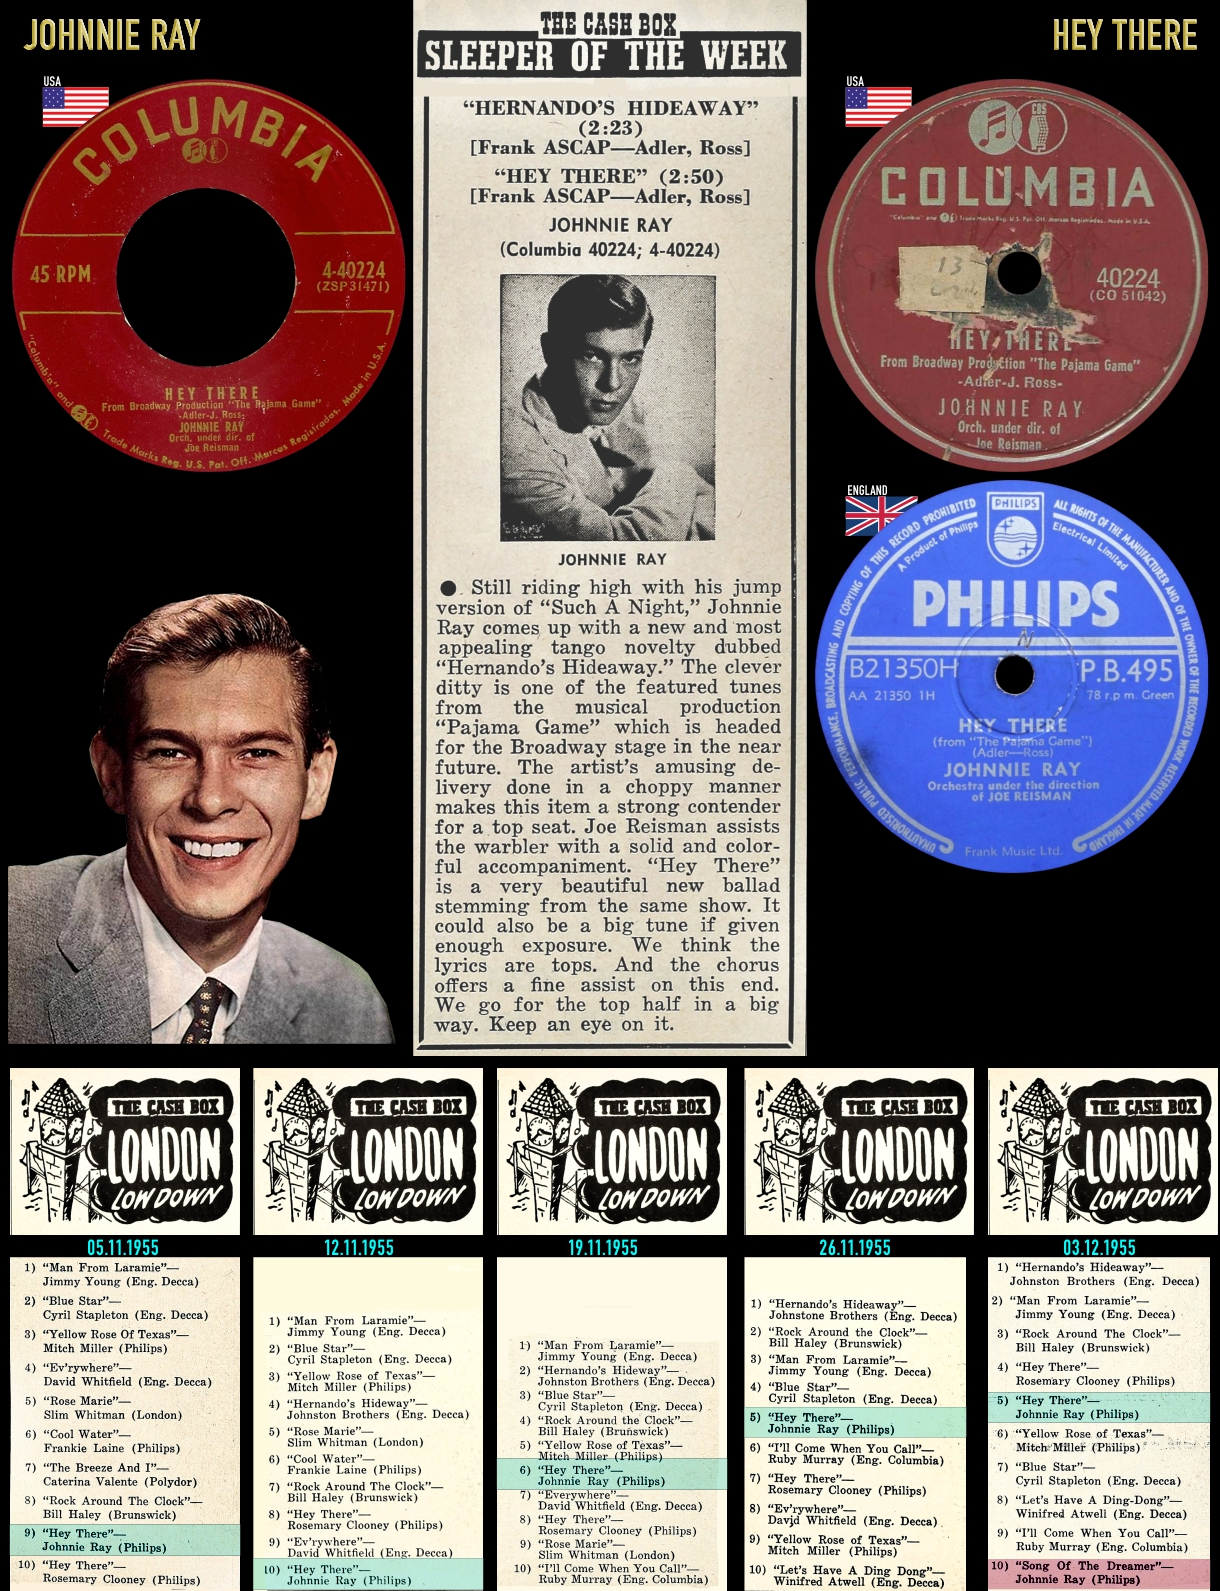 551015_Johnnie Ray_Hey There